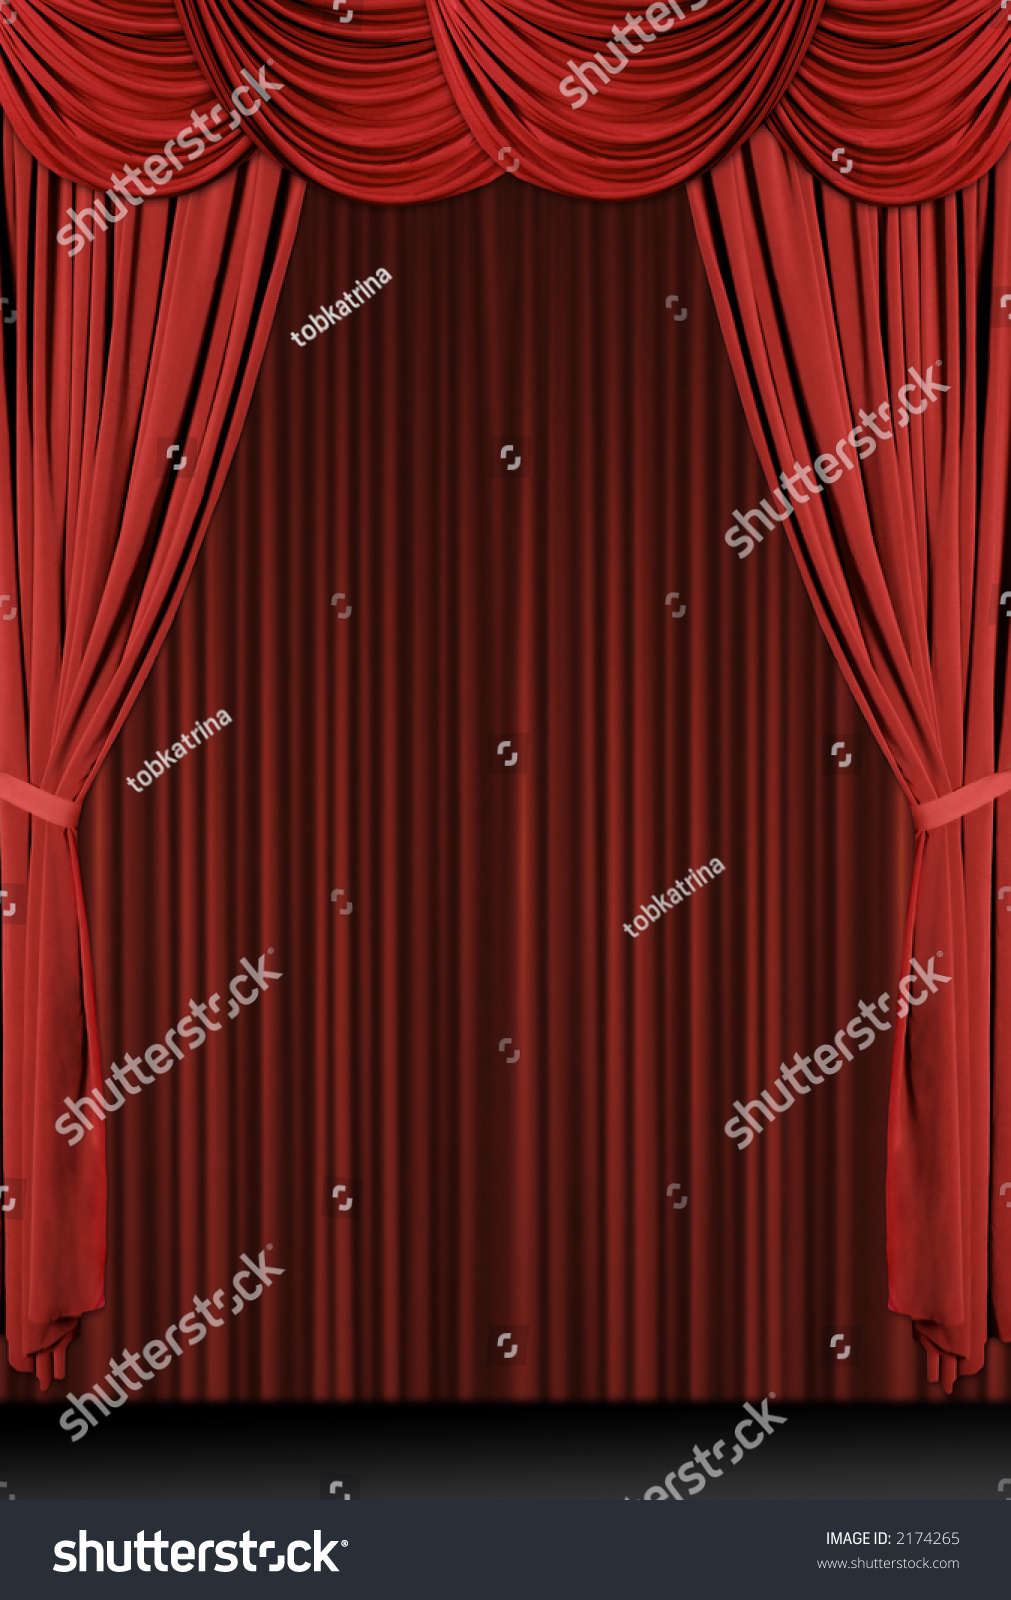 Stock photo dramatic red old fashioned elegant theater stage stock - Vertical Old Fashioned Elegant Theater Stage With Velvet Curtains